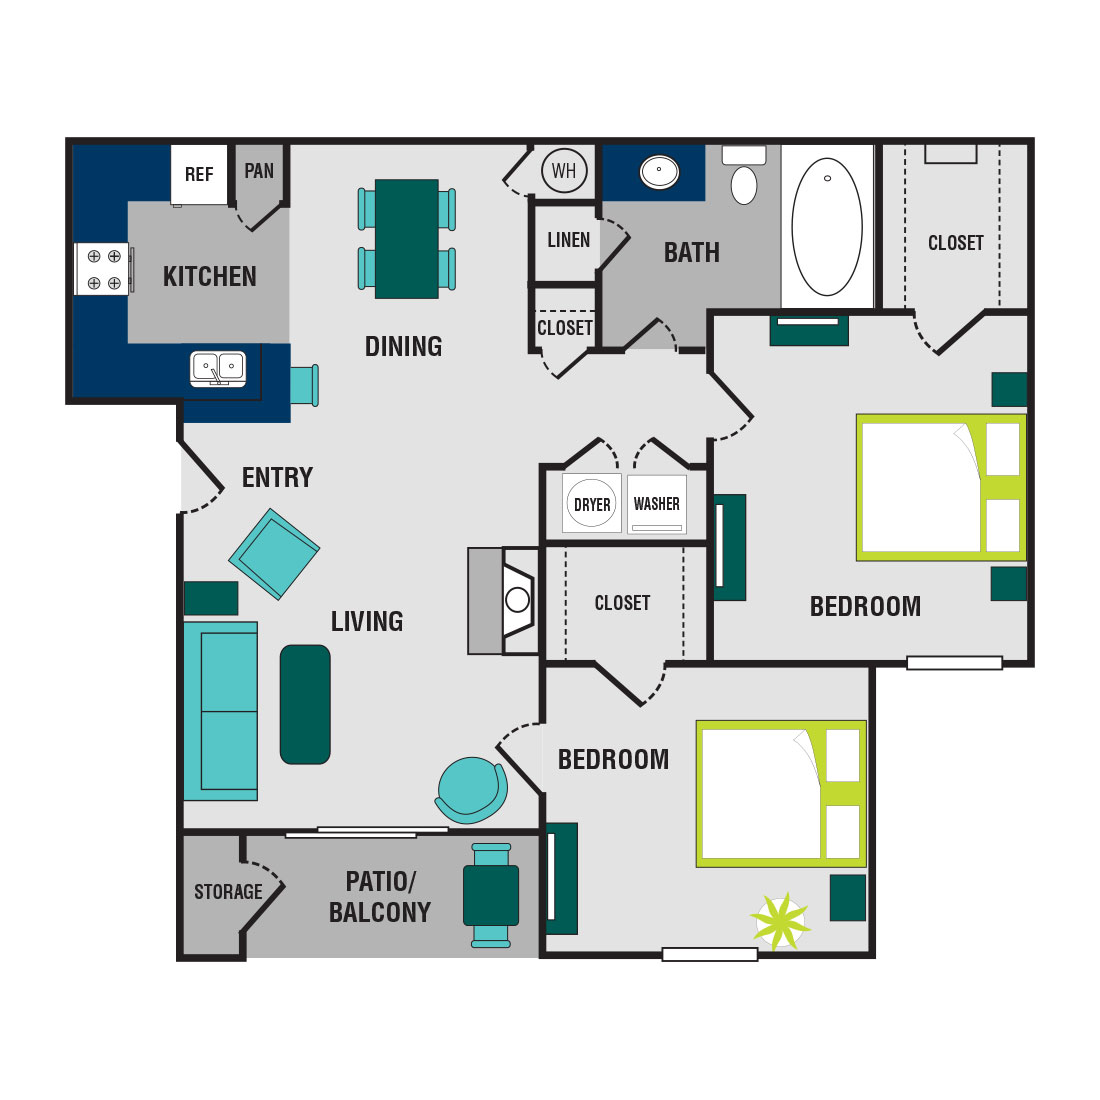 The Wyndham - Floorplan - 2 Bed/1 Bath - Upgraded